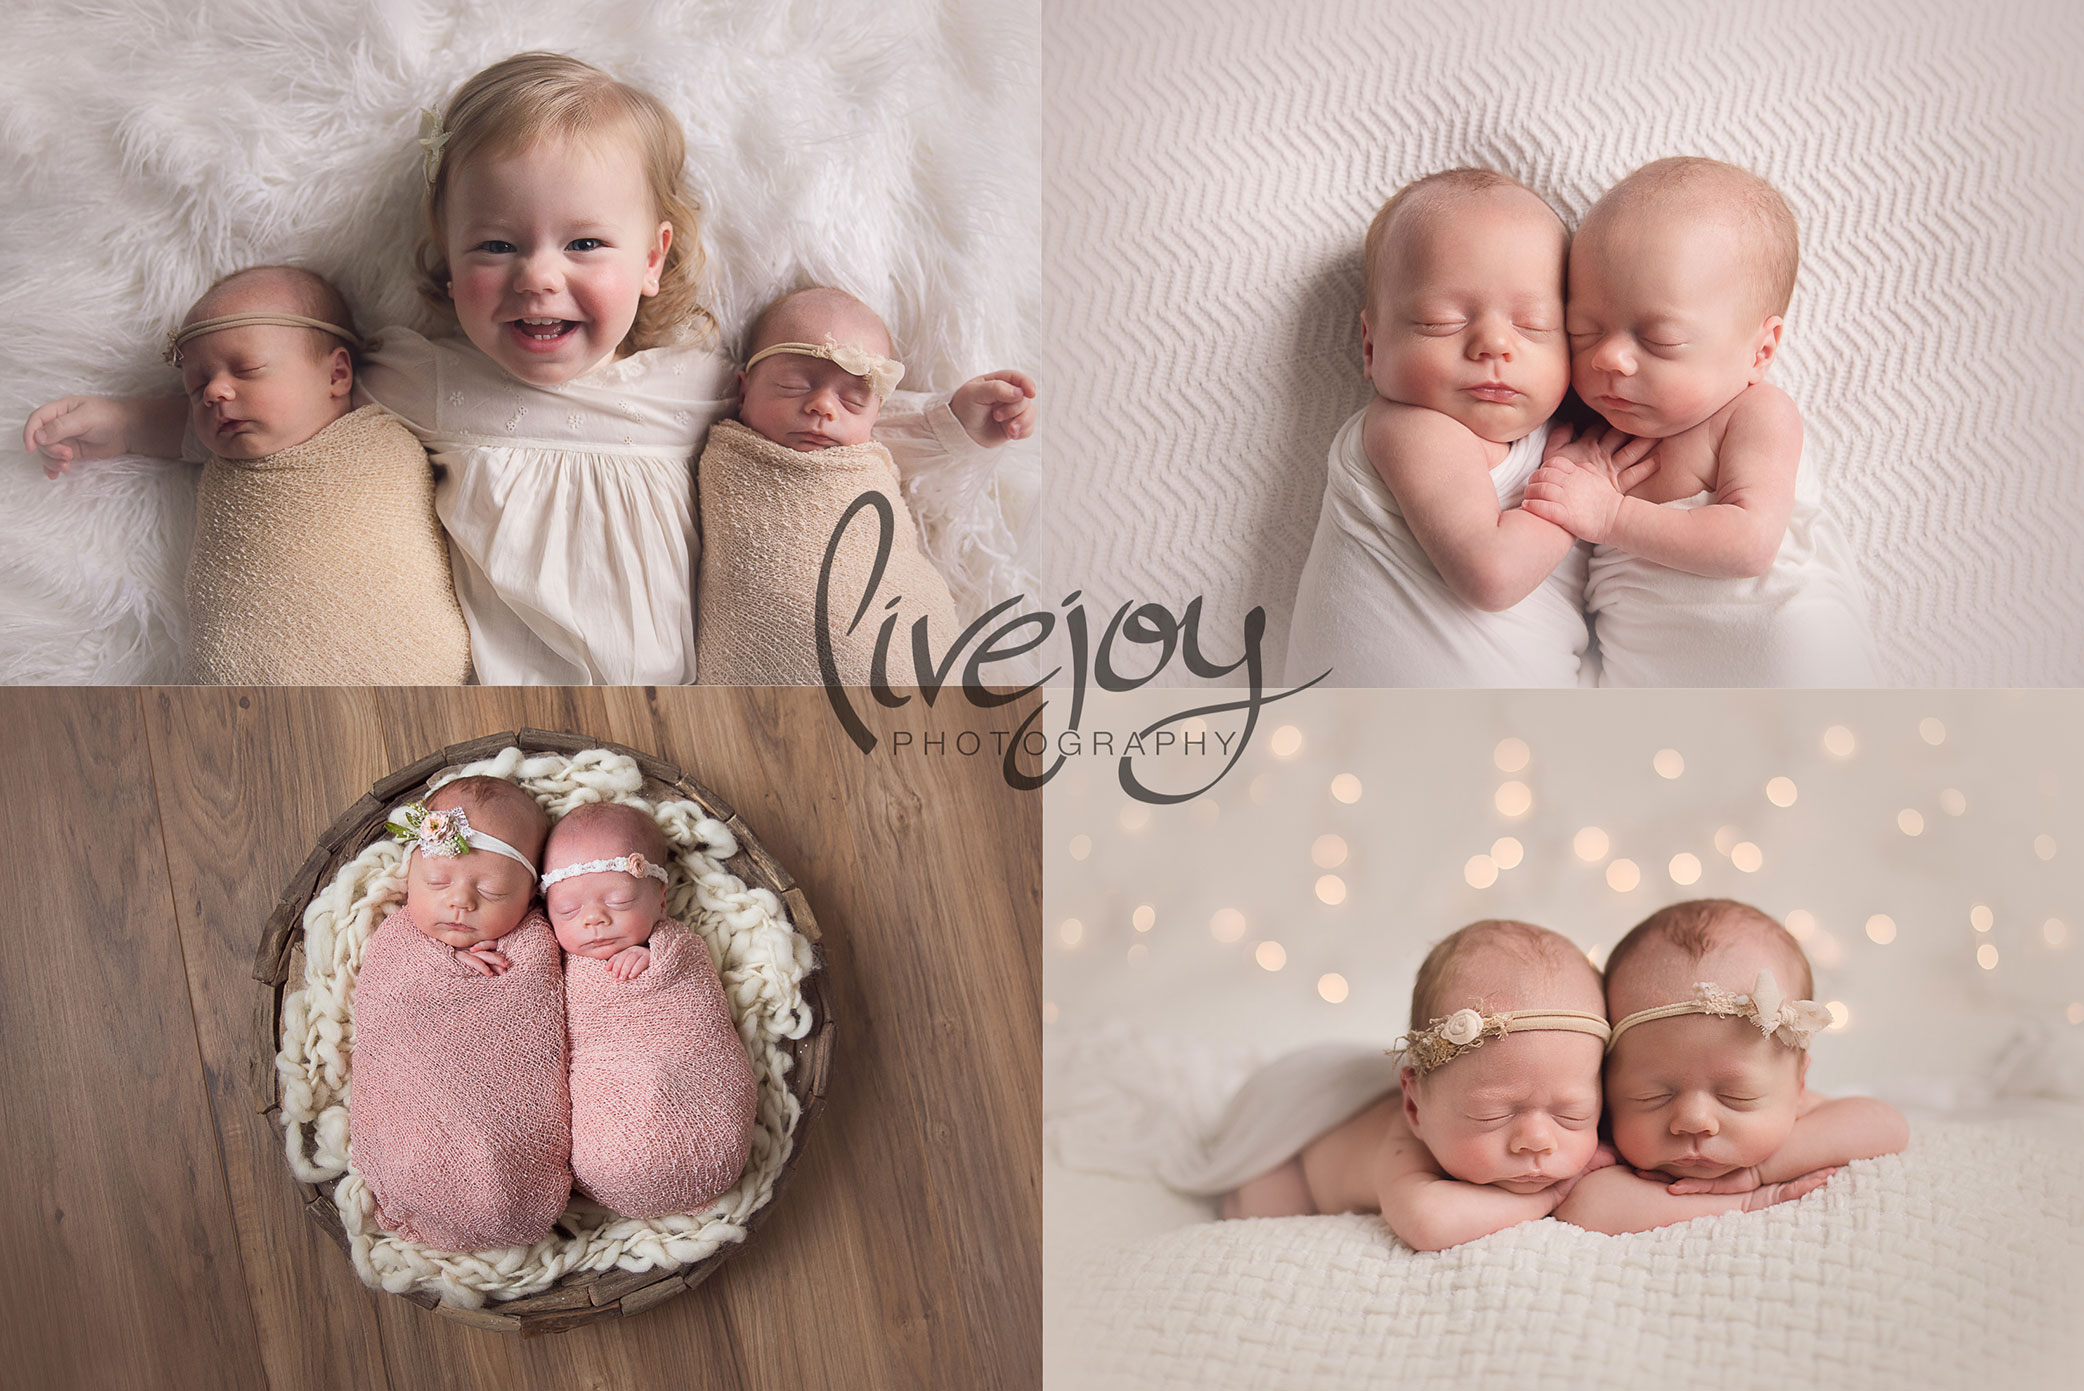 Twin Girls Newborn Photography | Oregon | LiveJoy Photography